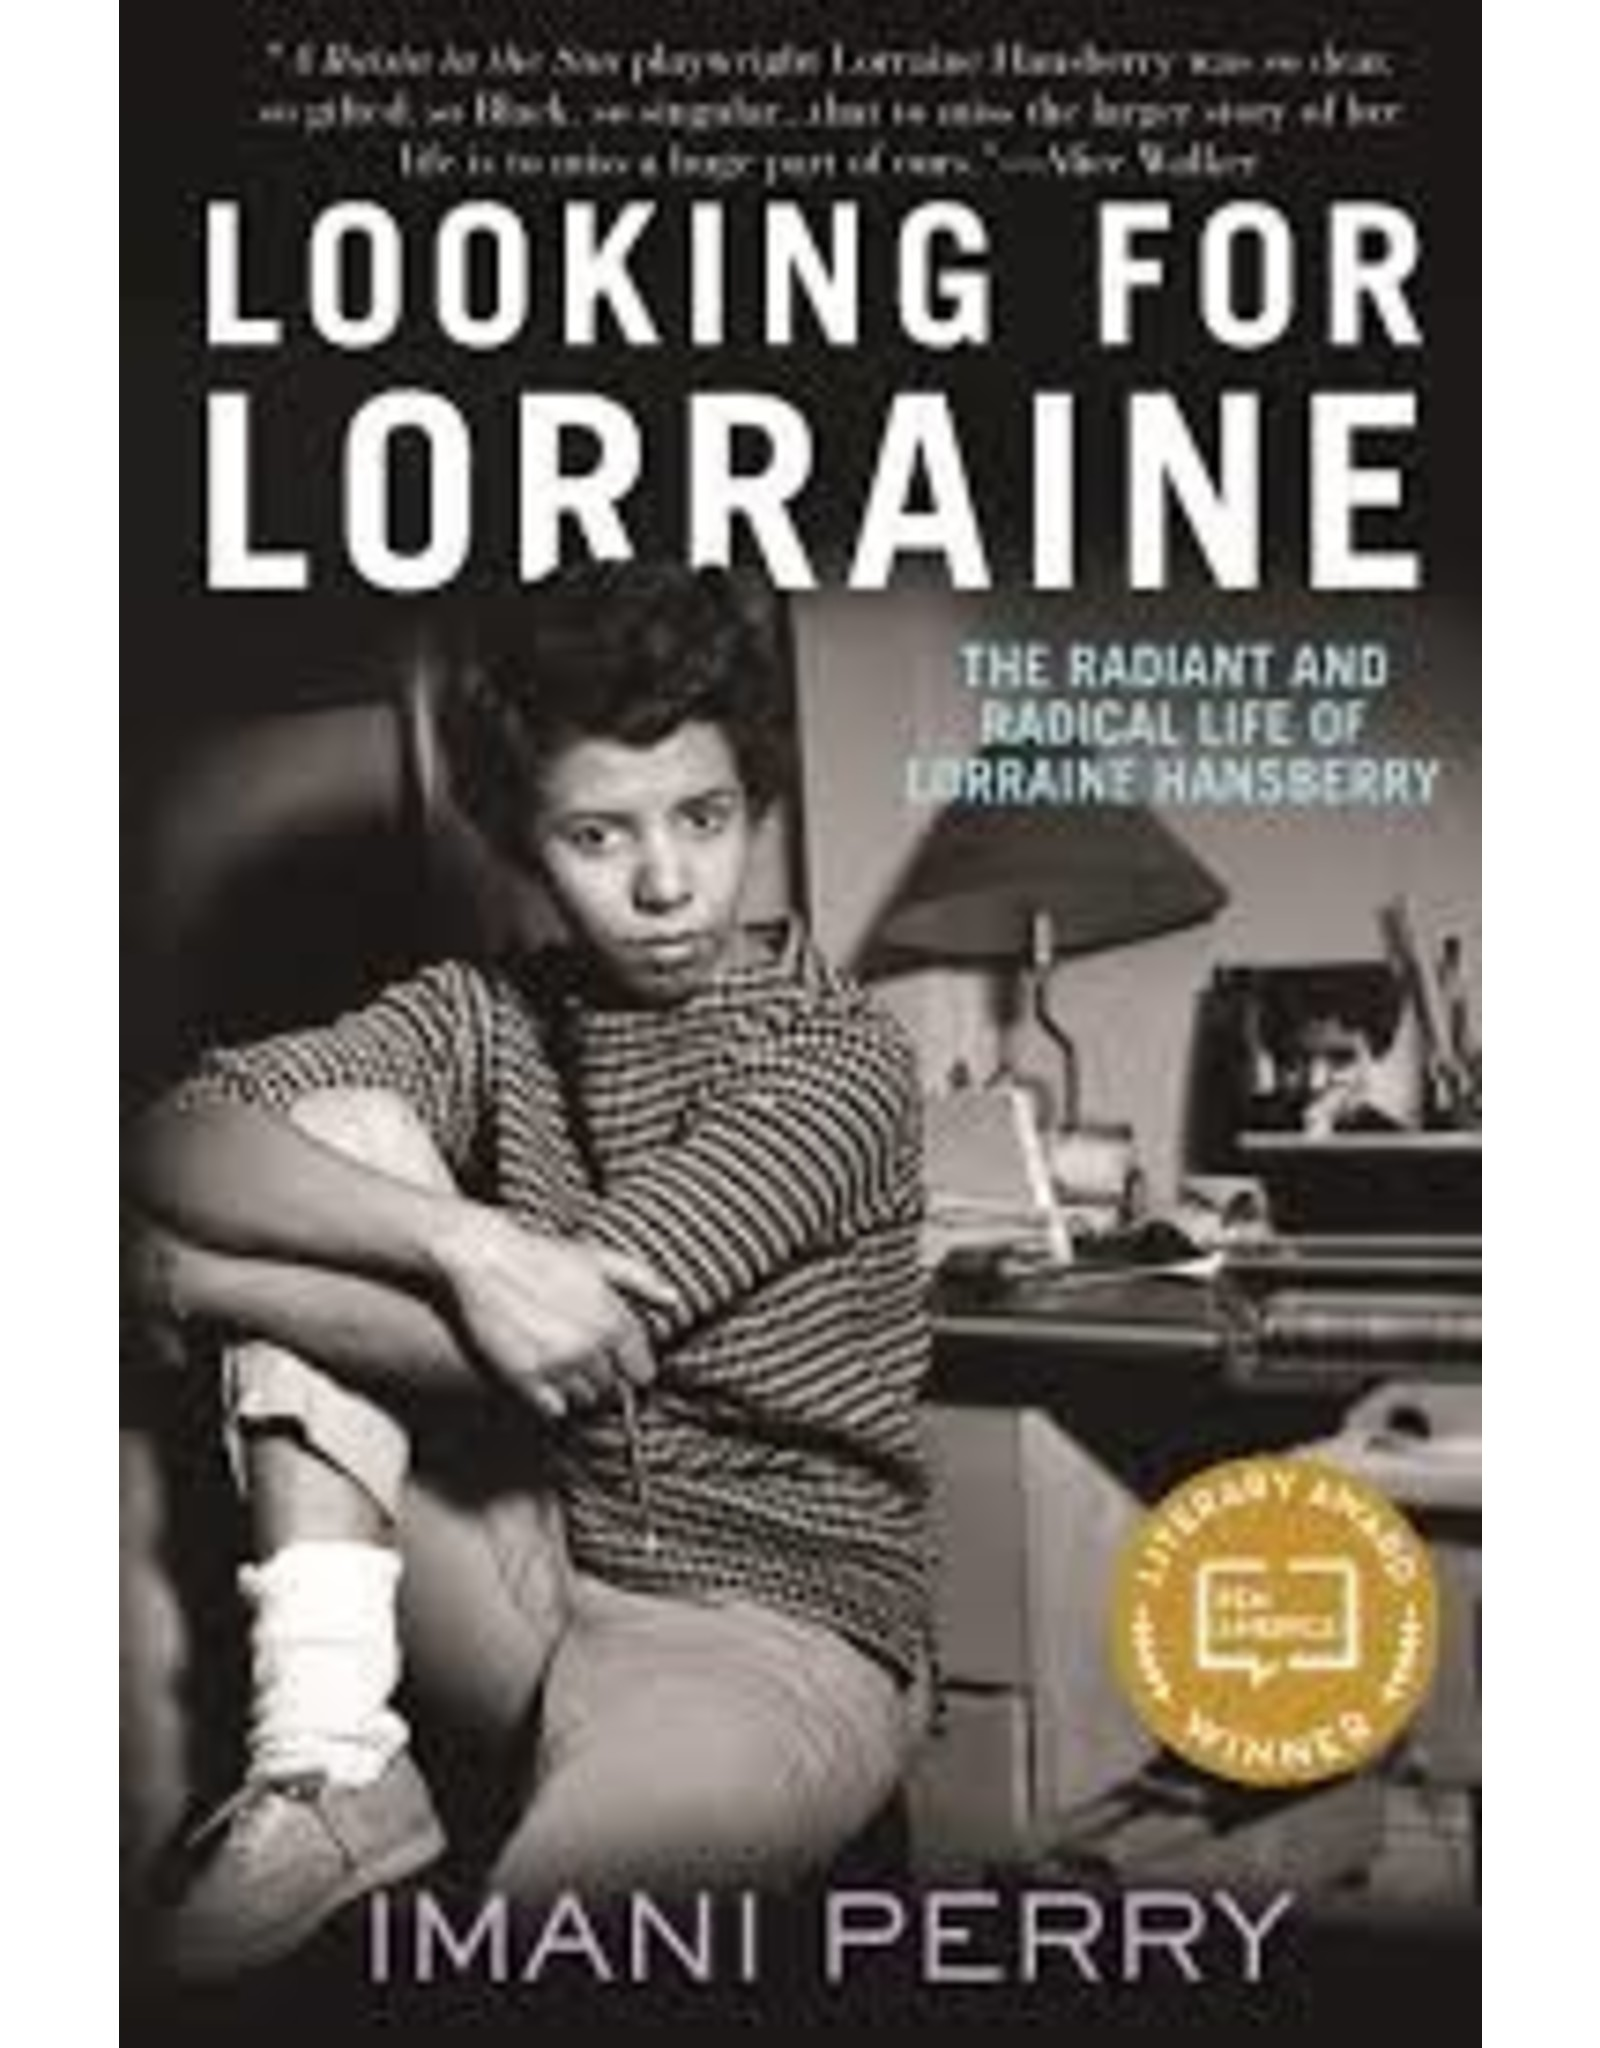 Books Looking for Lorraine by Imani Perry